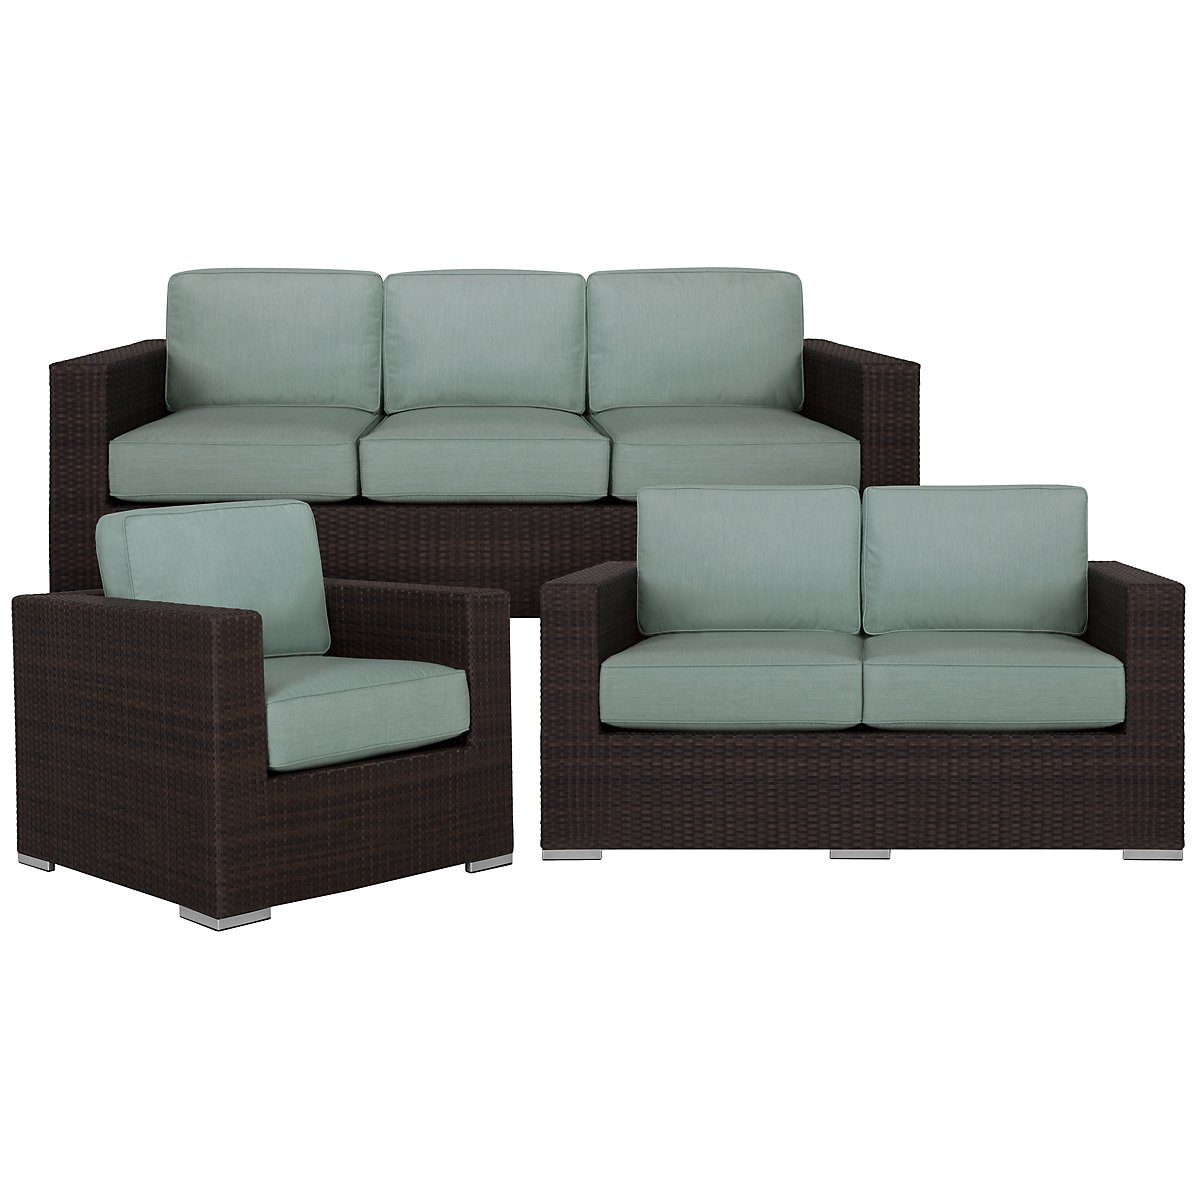 City Furniture Fina Teal Loveseat